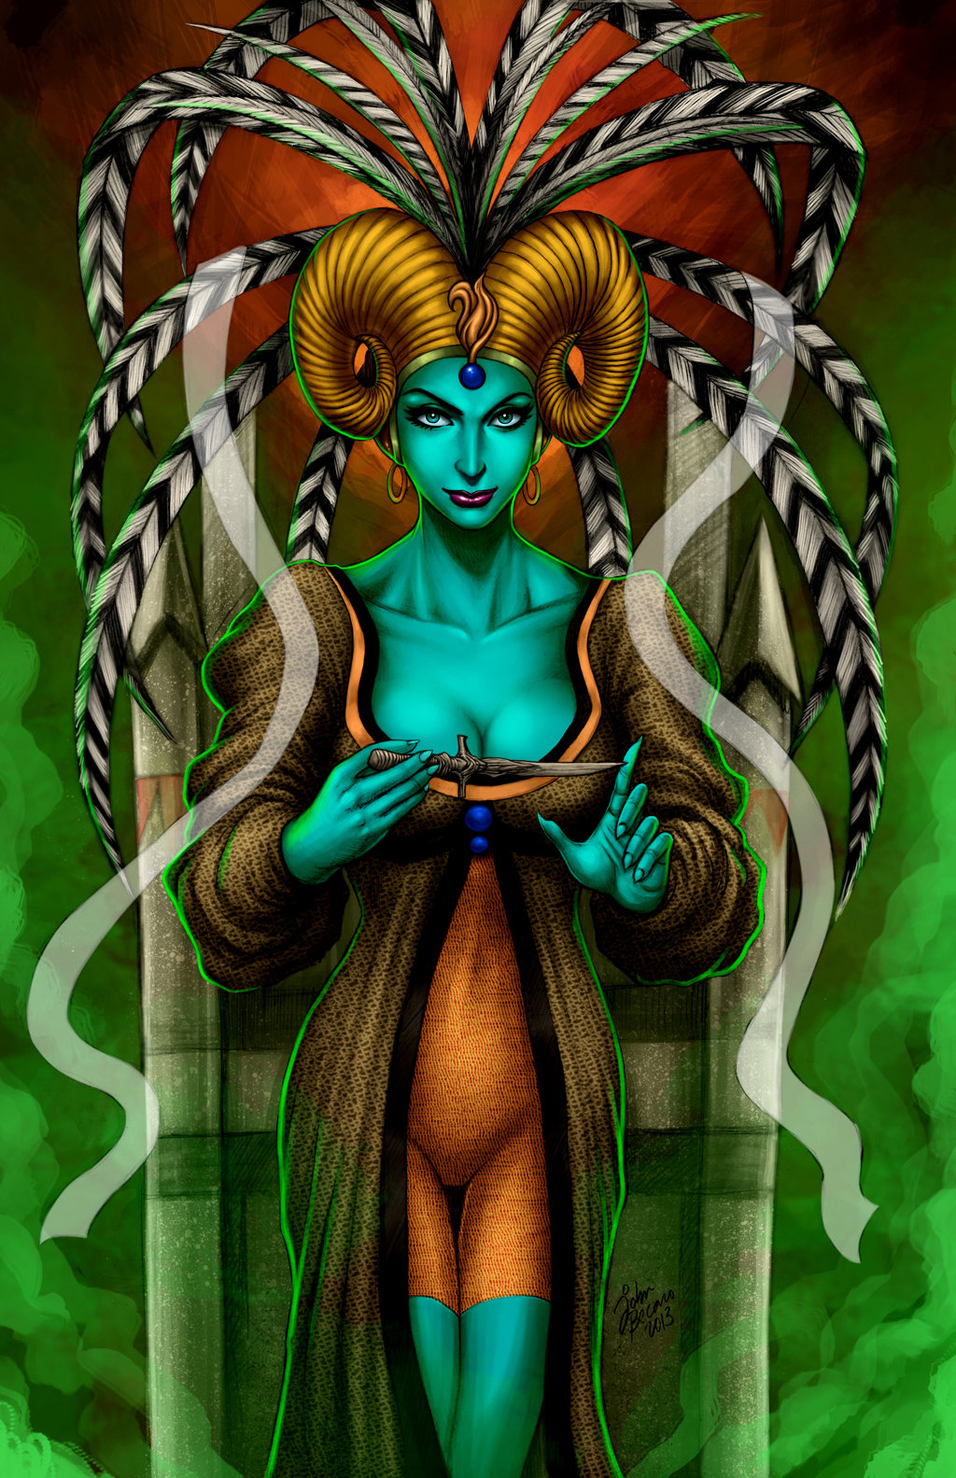 curse_of_the_crimson_altar_complete_colors_by_johnbecaro-d6ycp8g.jpg